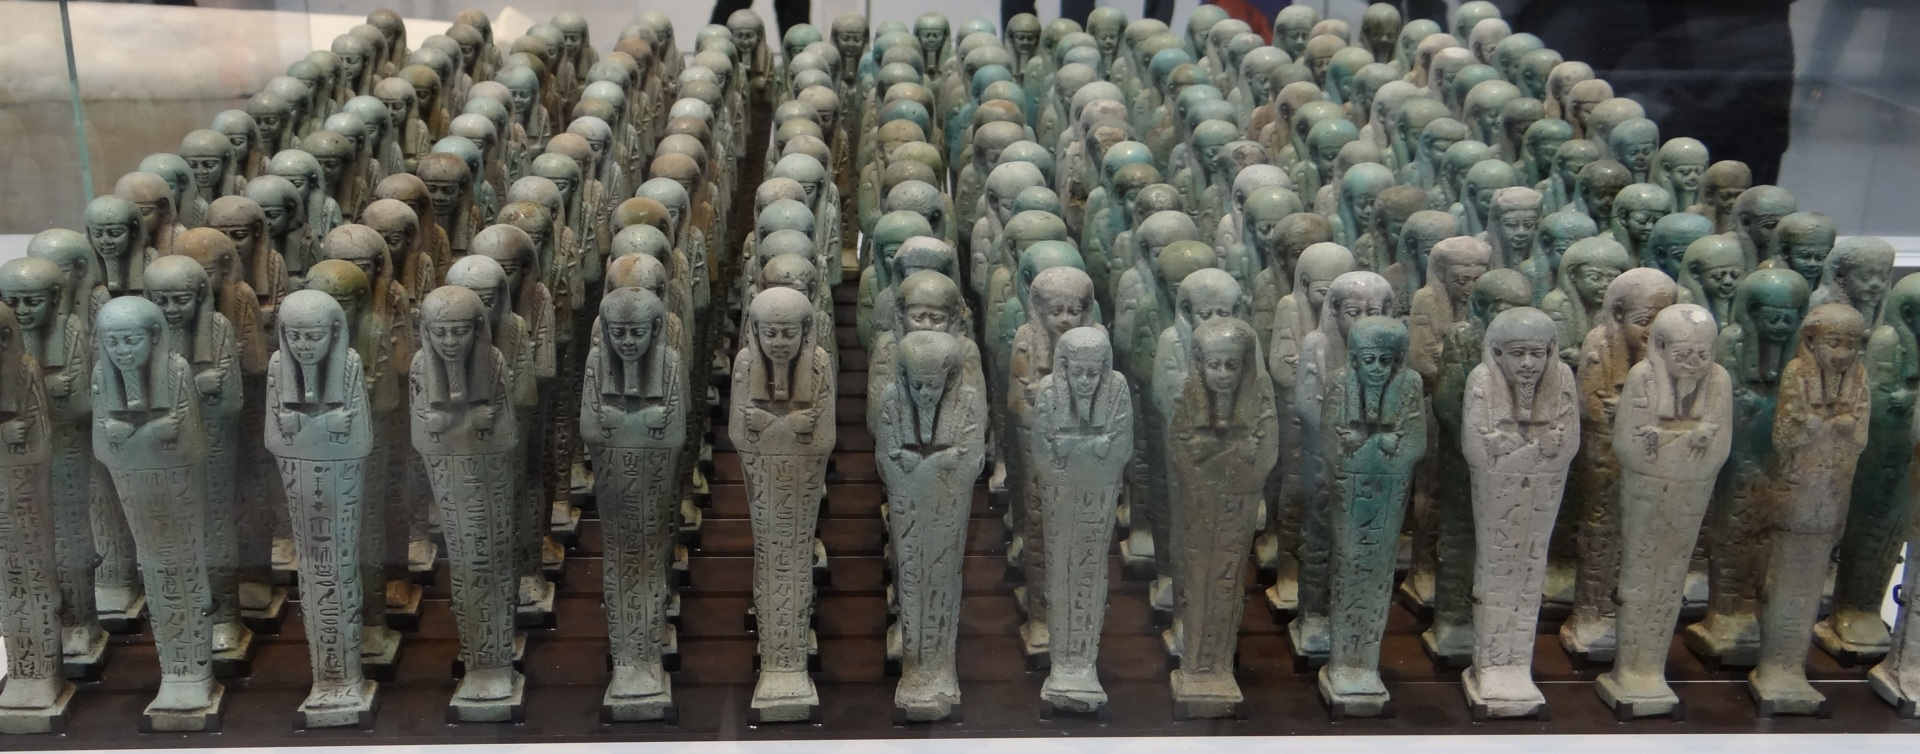 A Collection of Ushabti Figurines